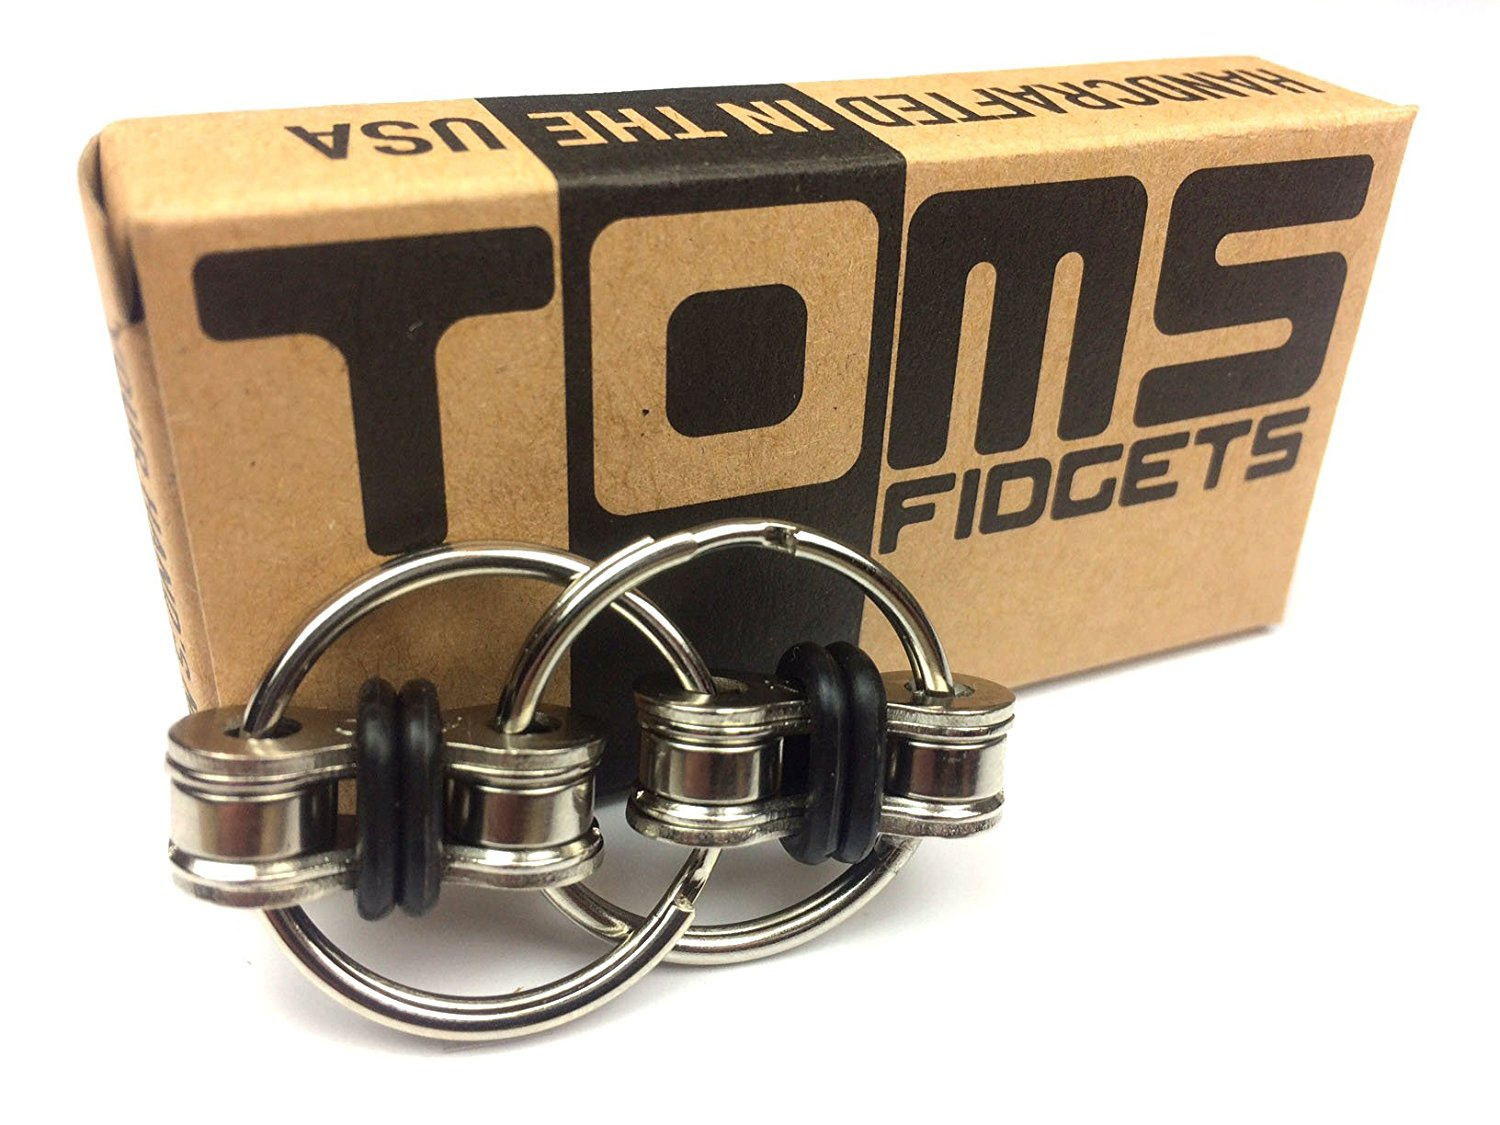 Tom's Fidgets Flippy Chain